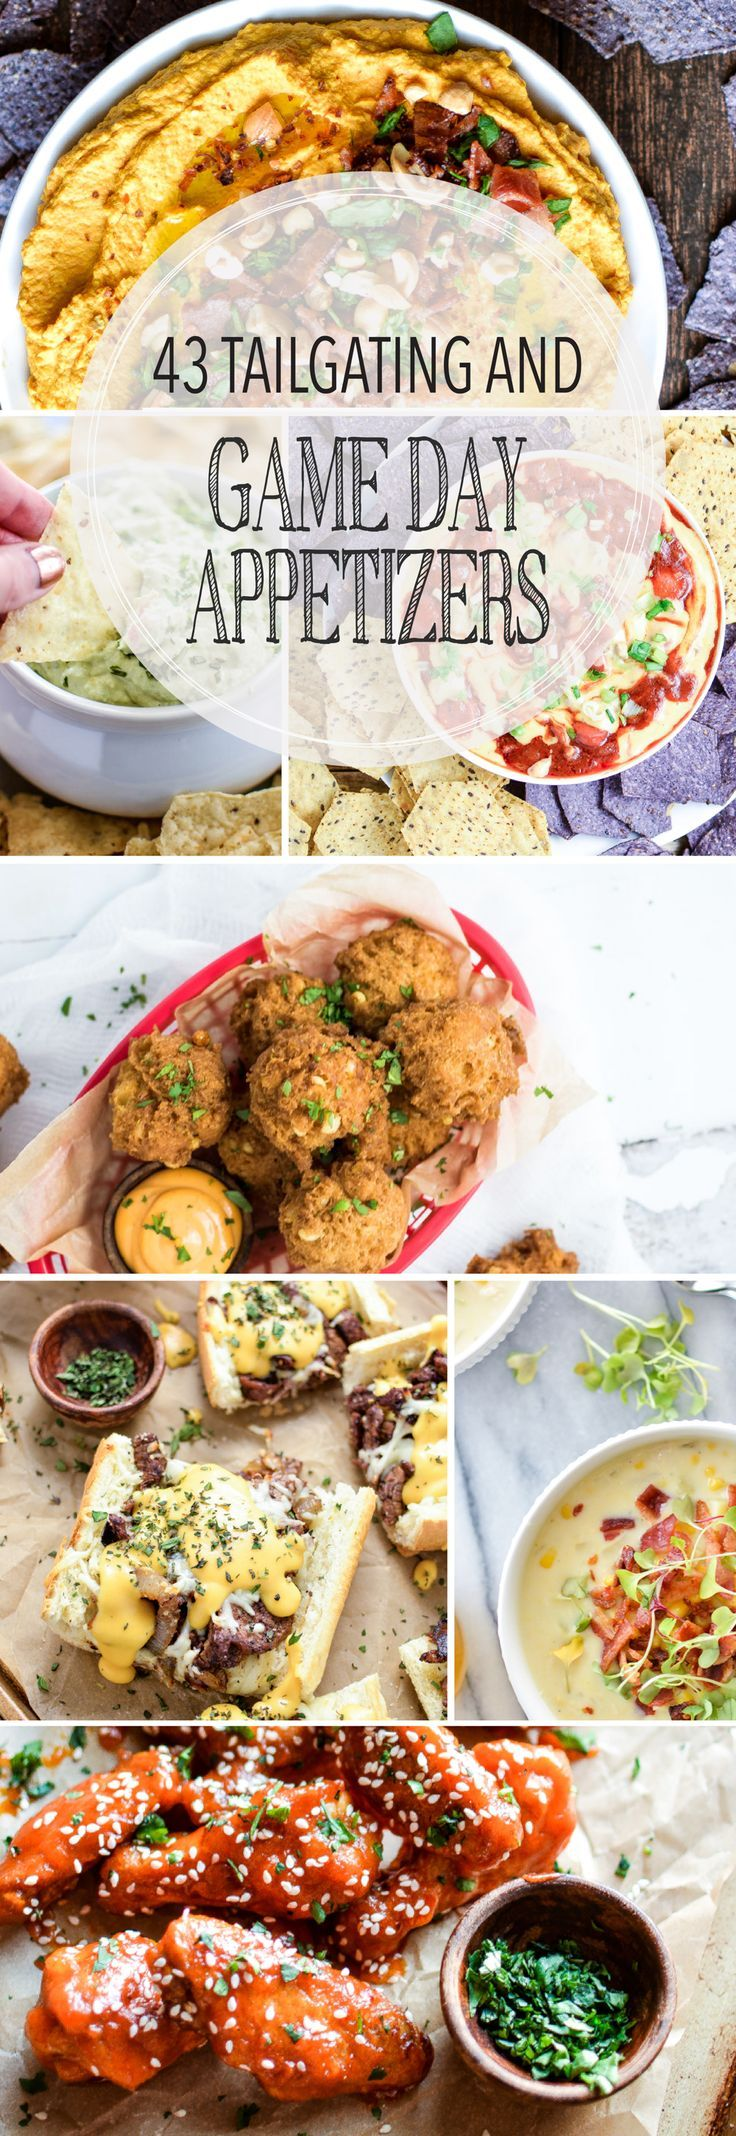 From savory soups to sweet and spicy ribs and pigs in a blanket to nachos…